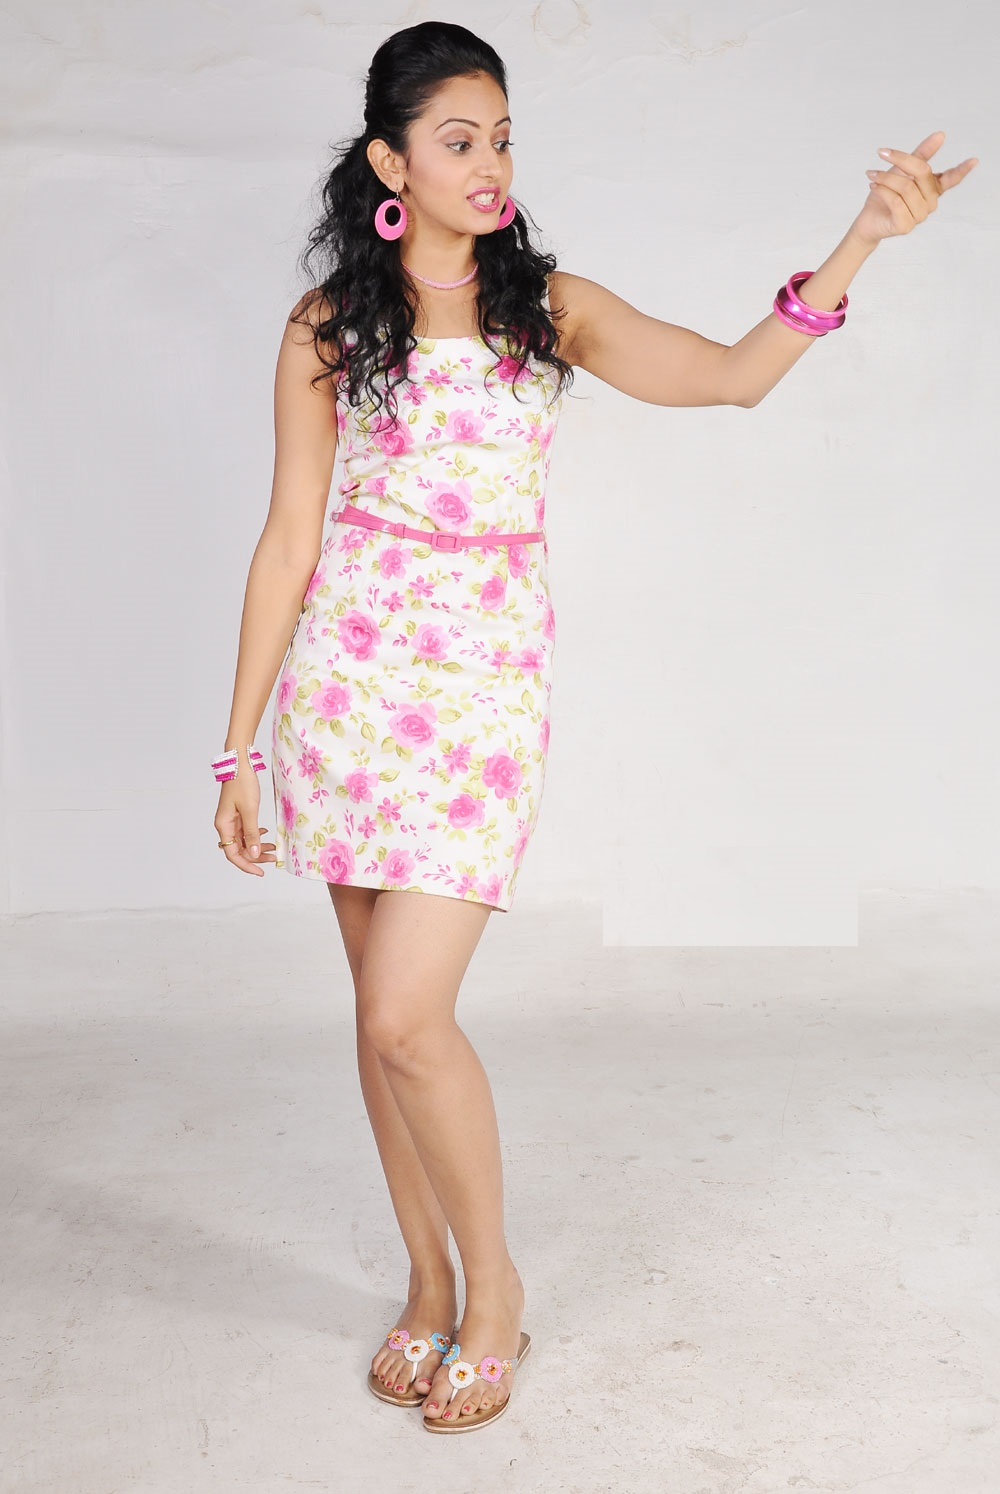 Tollywood Actress Rakul Preet Singh Spicy Legs Show Photo Shoot In Pink Short Skirt